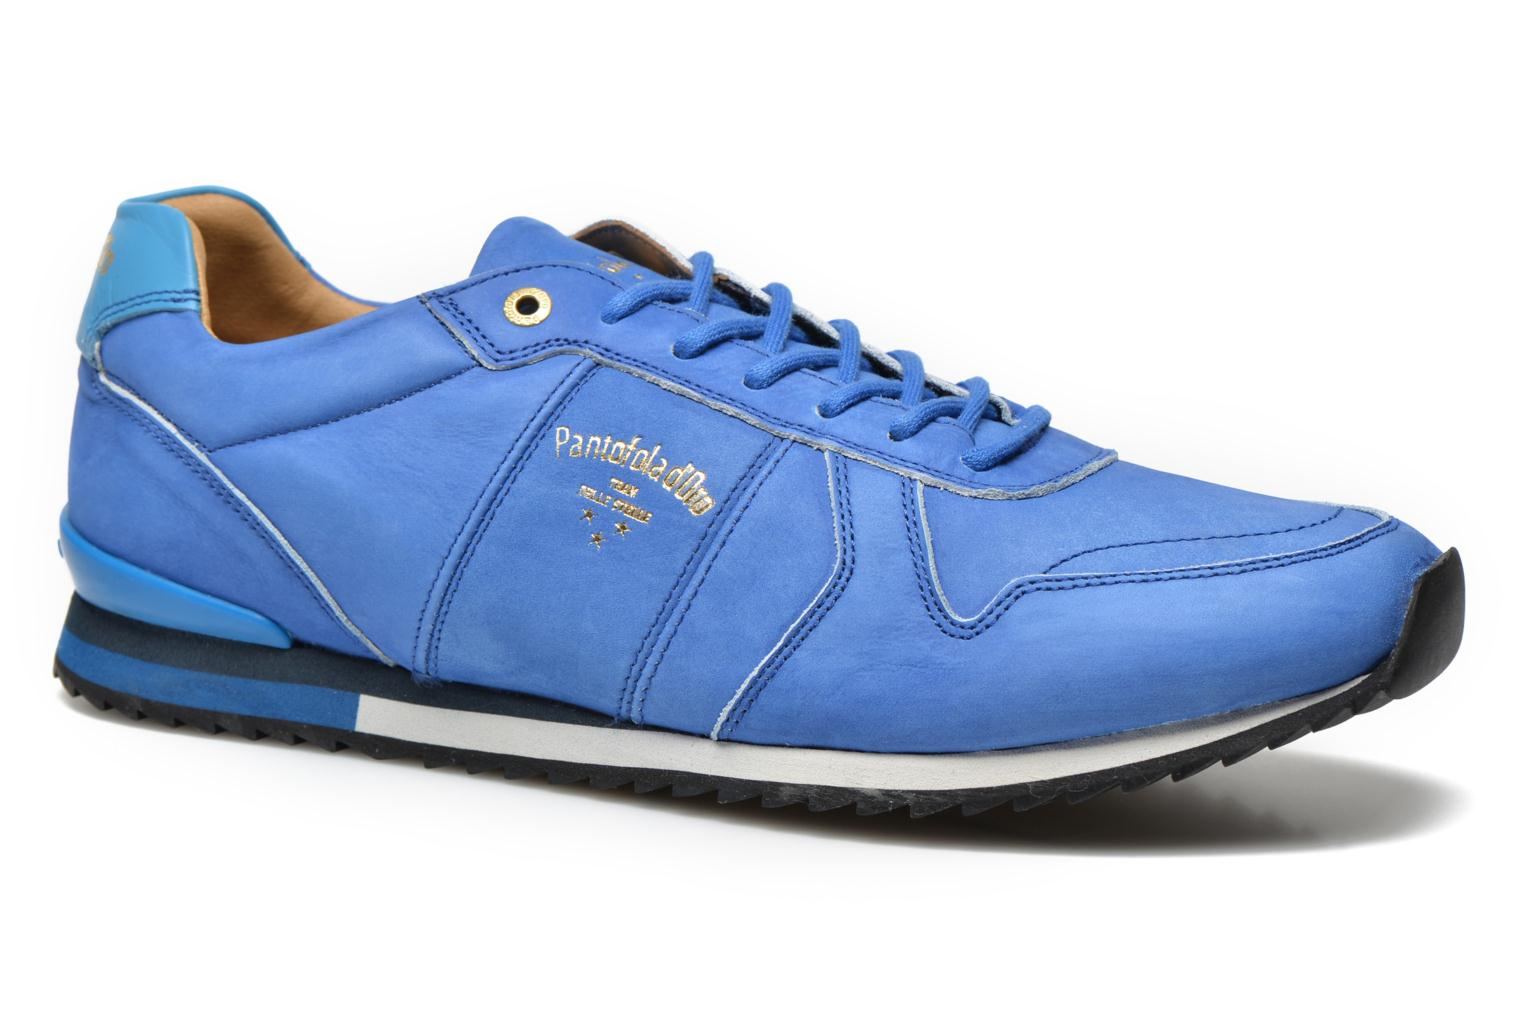 Sneakers Teramo Vintage by Pantofola d'Oro